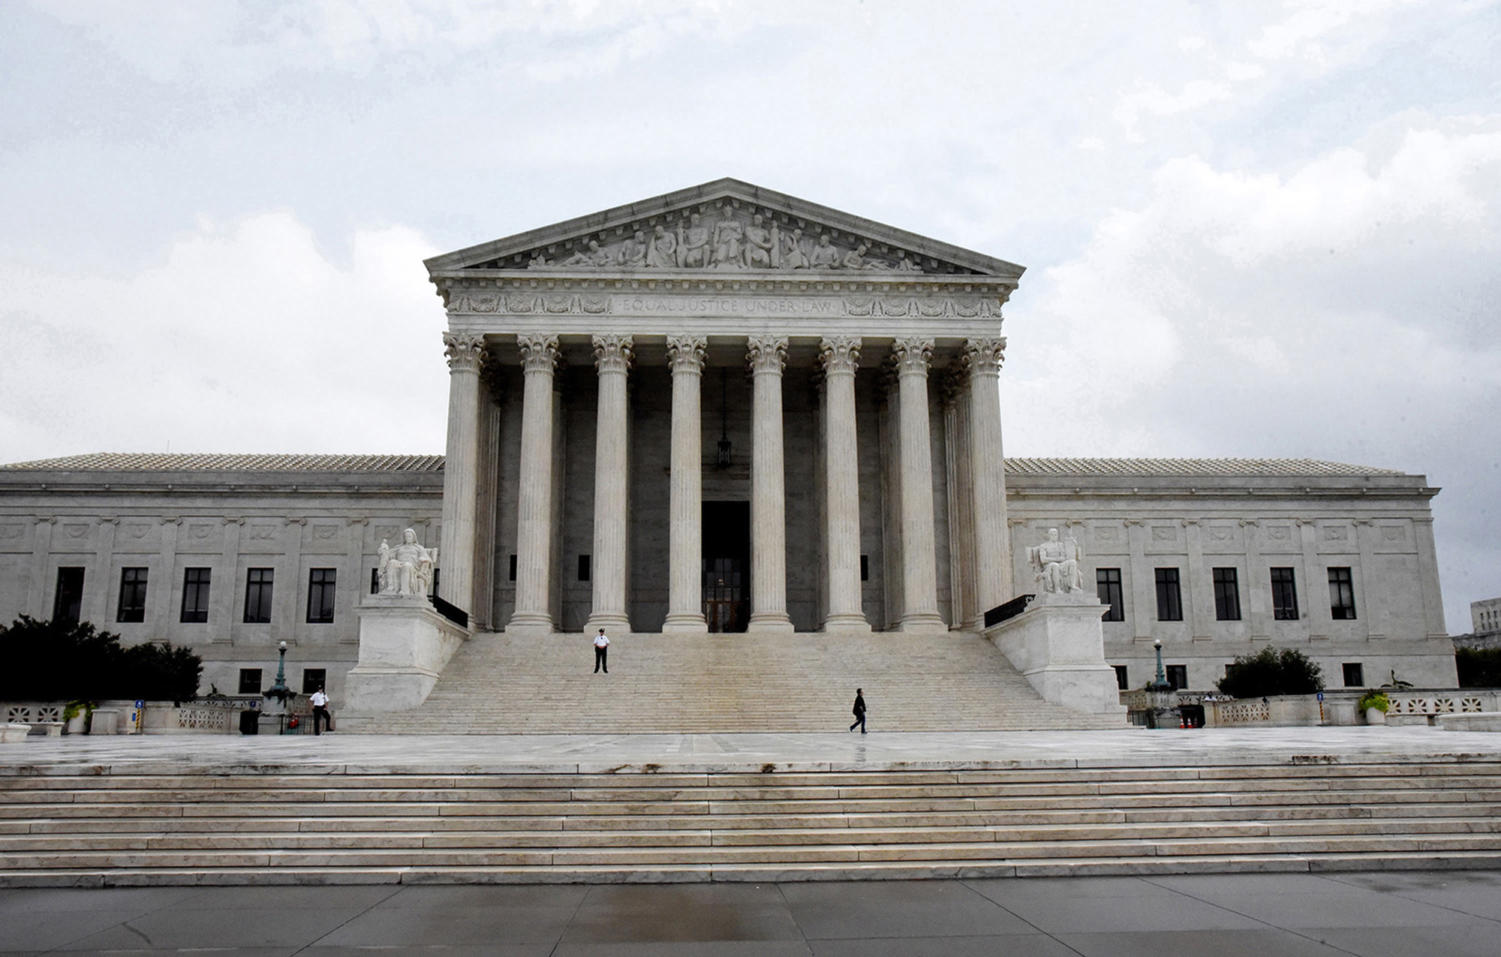 The Supreme Court of the United States in Washington, D.C., on September 25, 2018. Supreme Court will hear case involving convicted DC area sniper.(Olivier Douliery/Abaca Press/TNS)